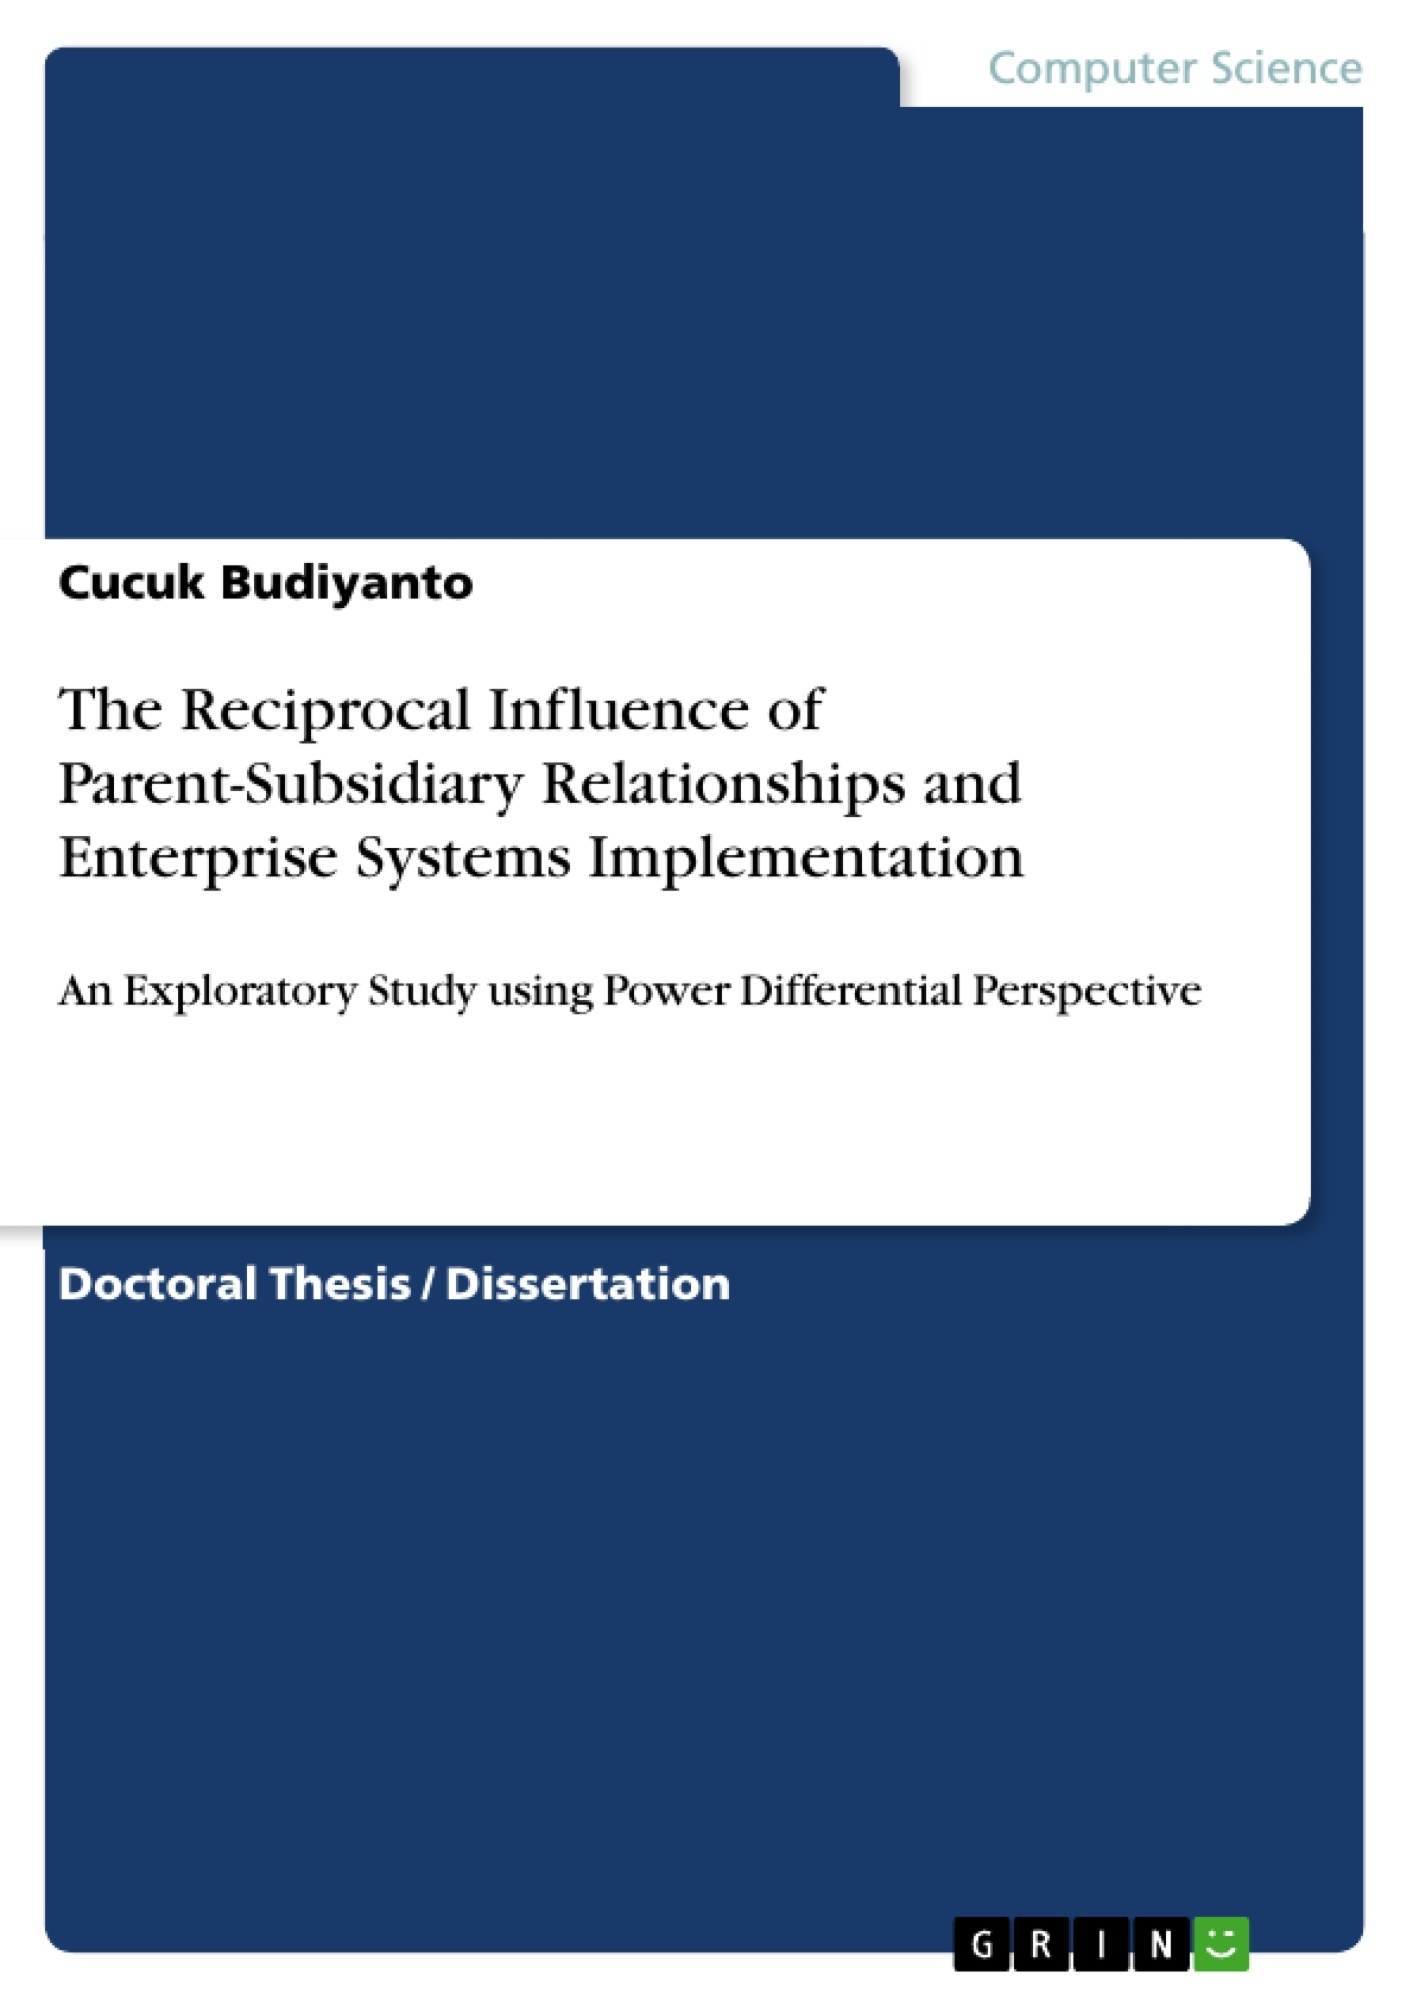 Title: The Reciprocal Influence of Parent-Subsidiary Relationships and Enterprise Systems Implementation